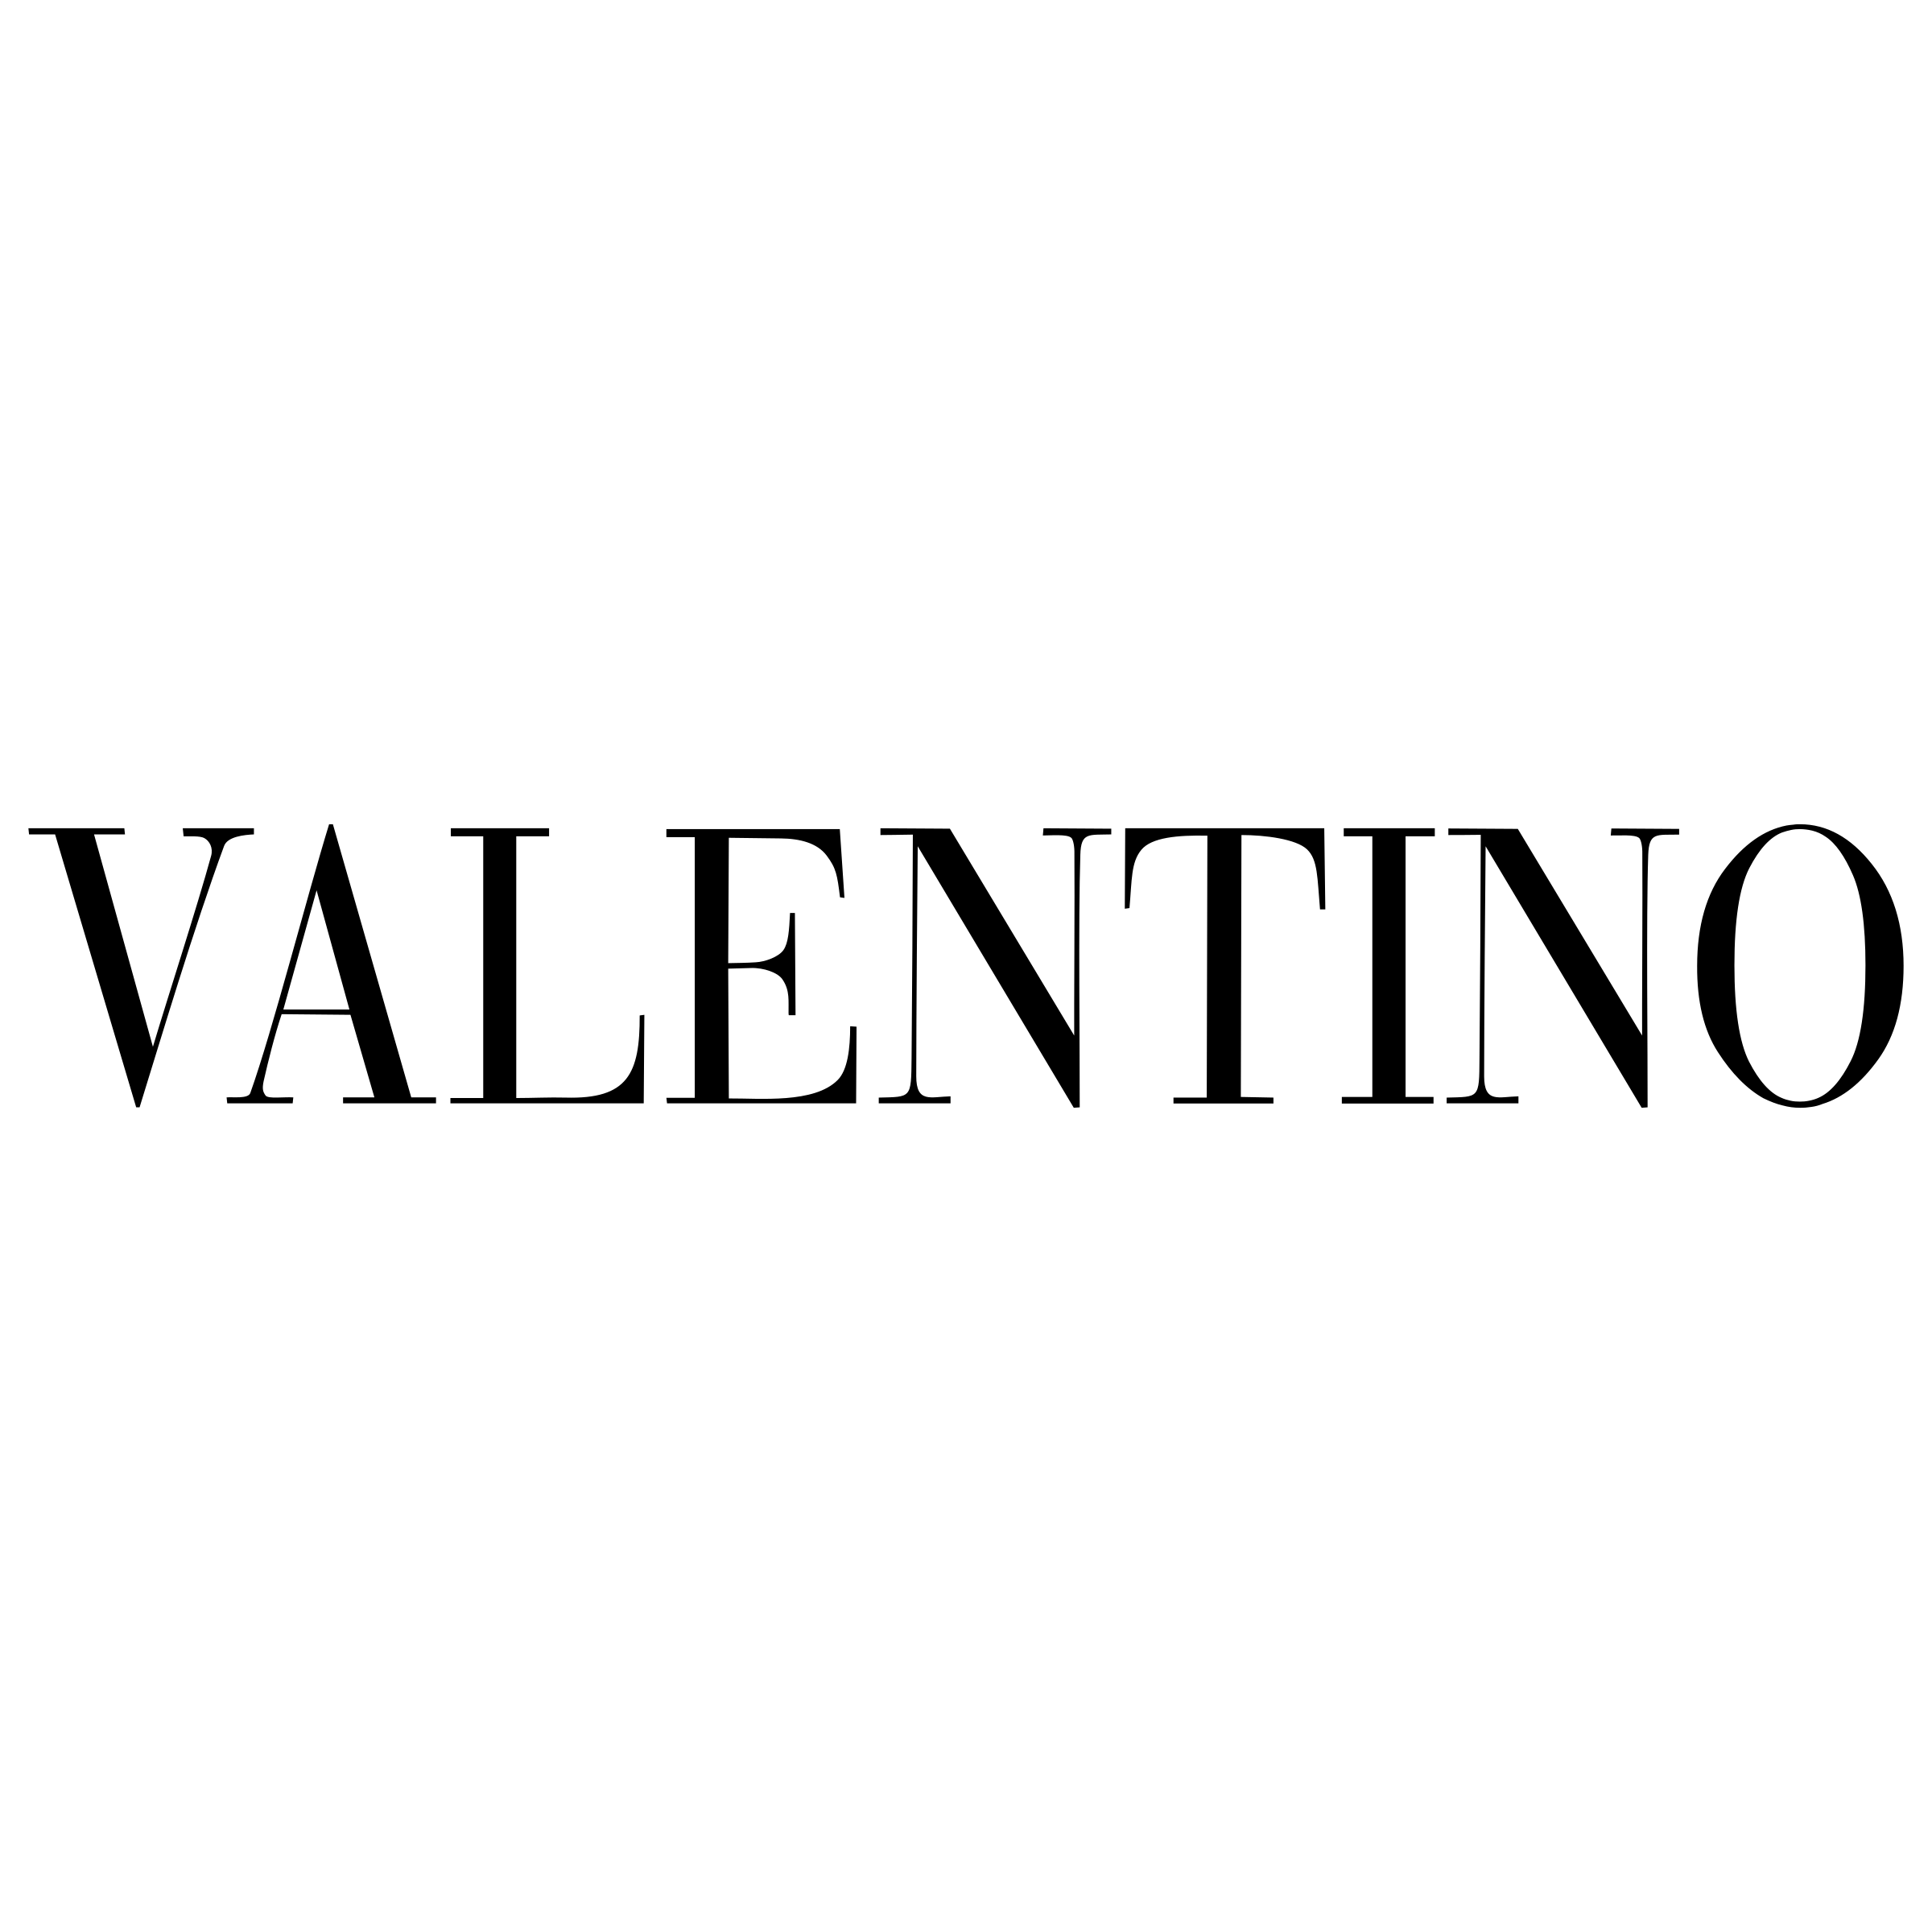 valentino-logo-png-transparent.png